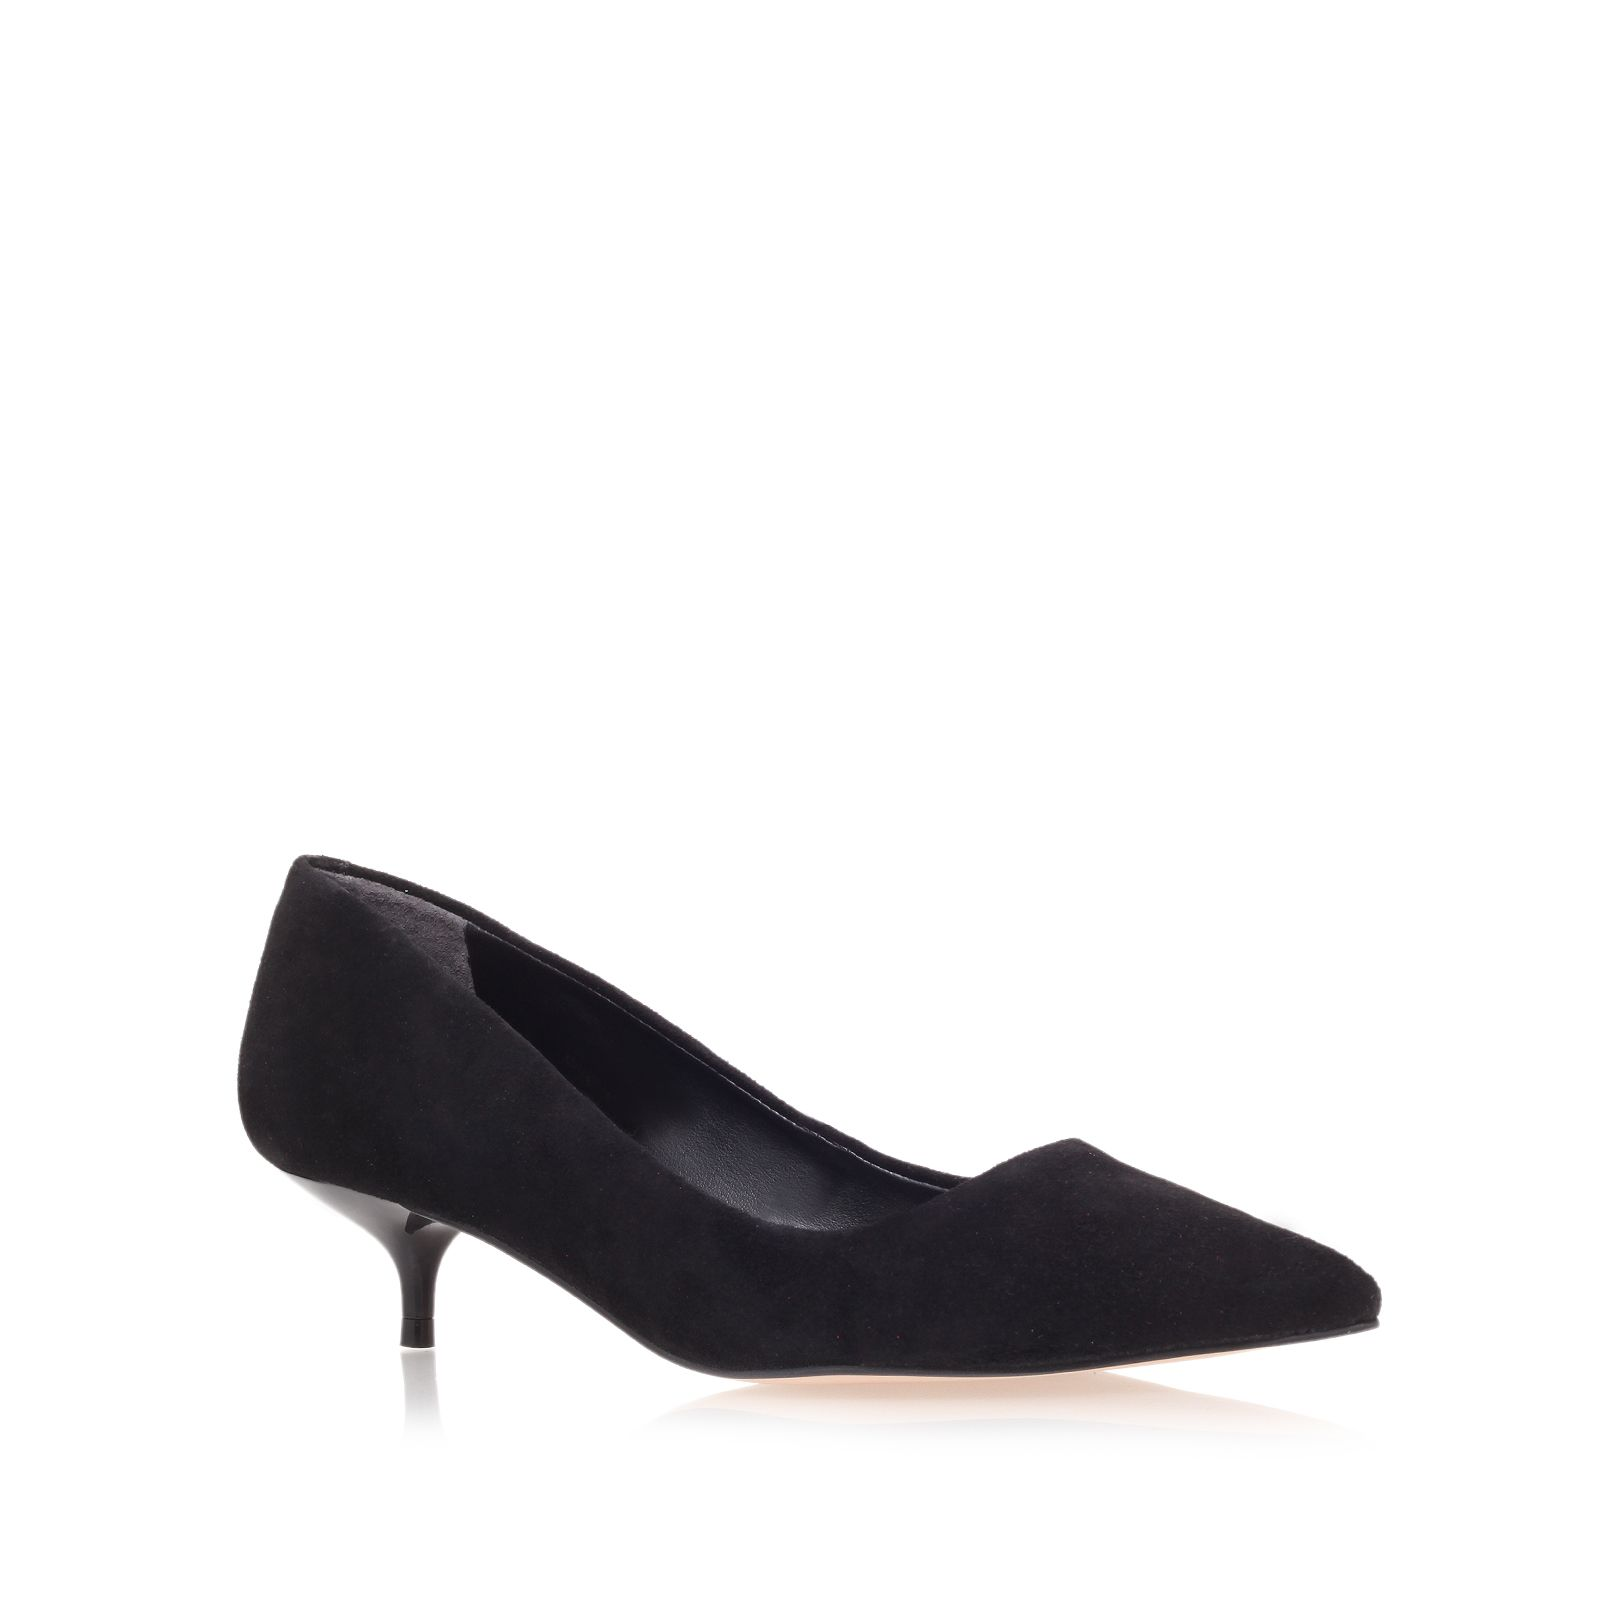 App low heel court shoes